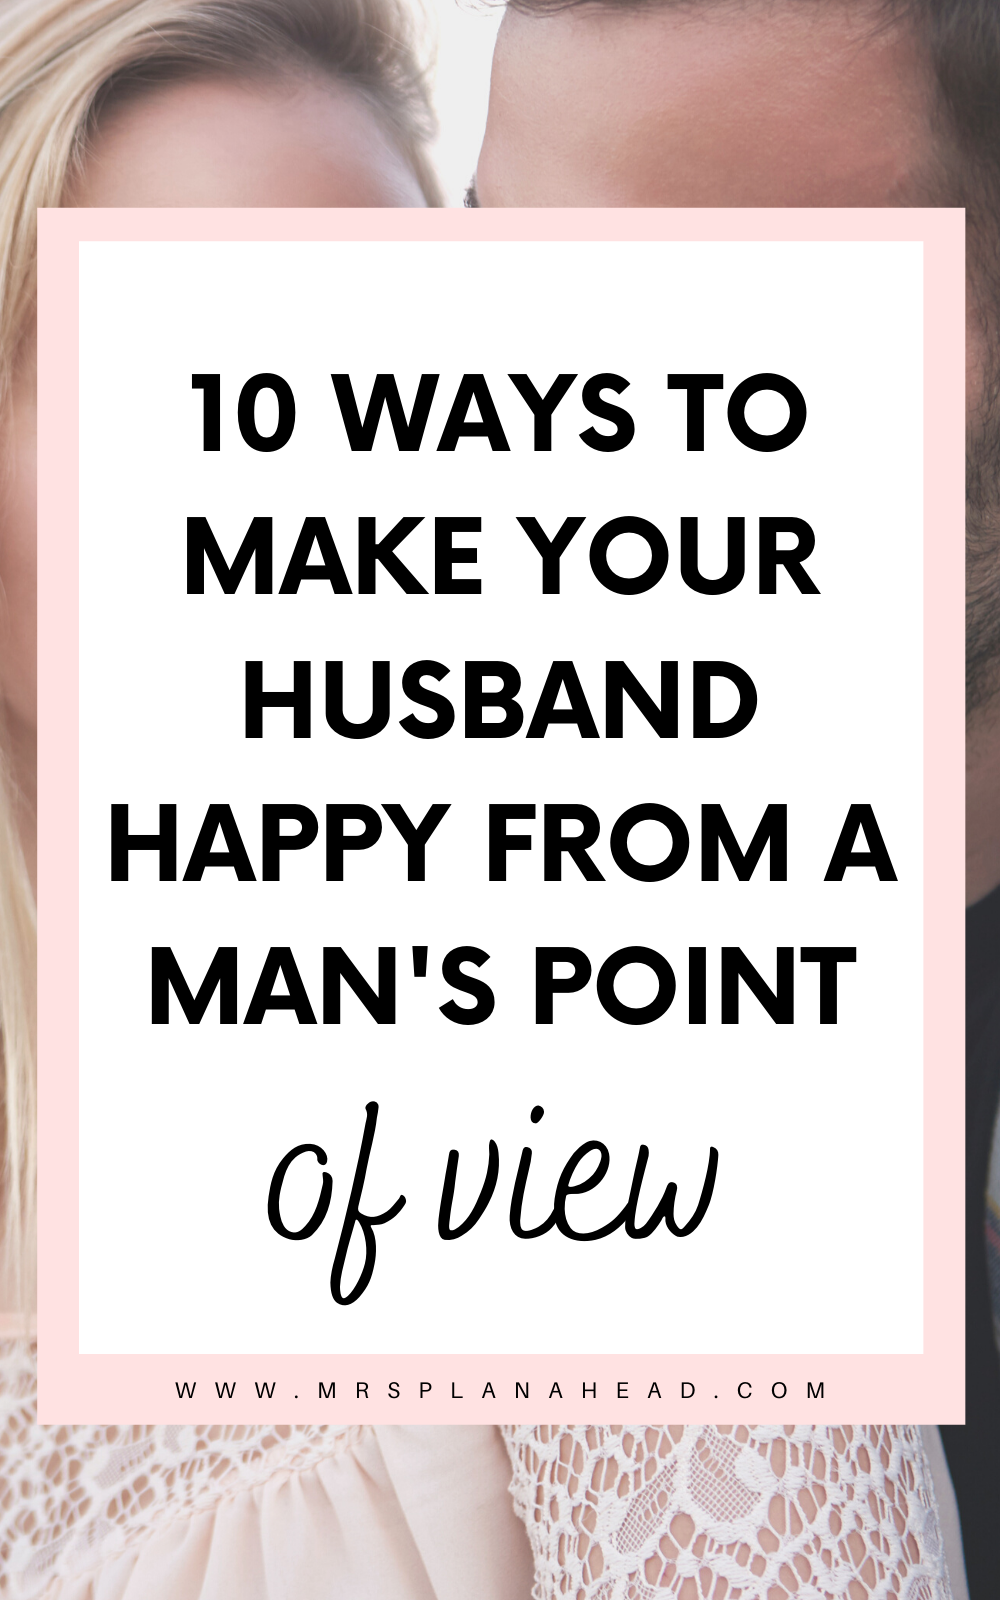 10 ways to make your husband happy from a mans point of